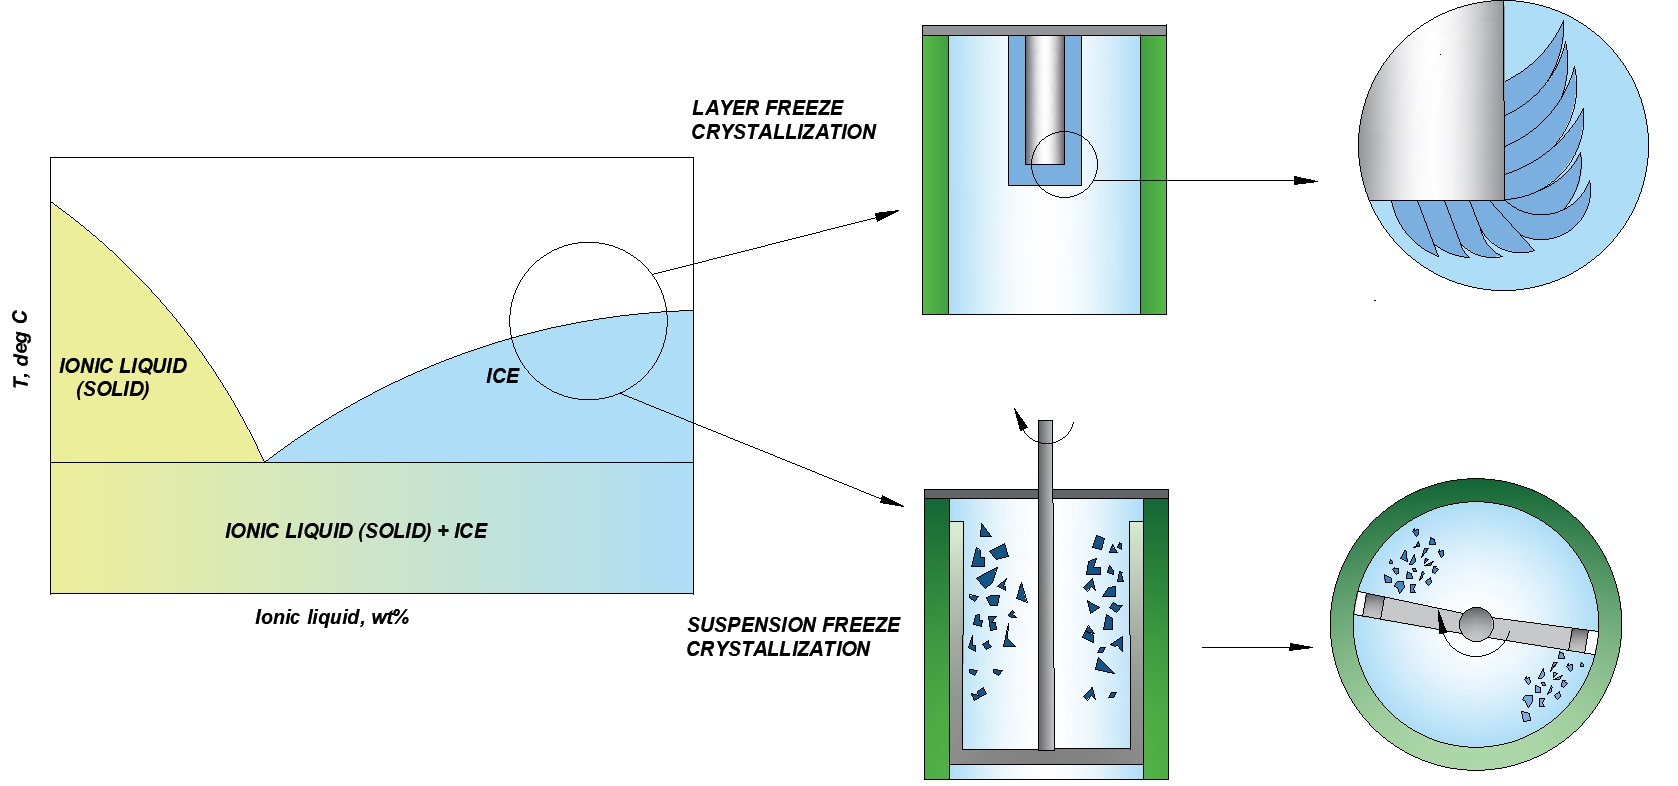 CMET_Aqueous systems_Crystallization